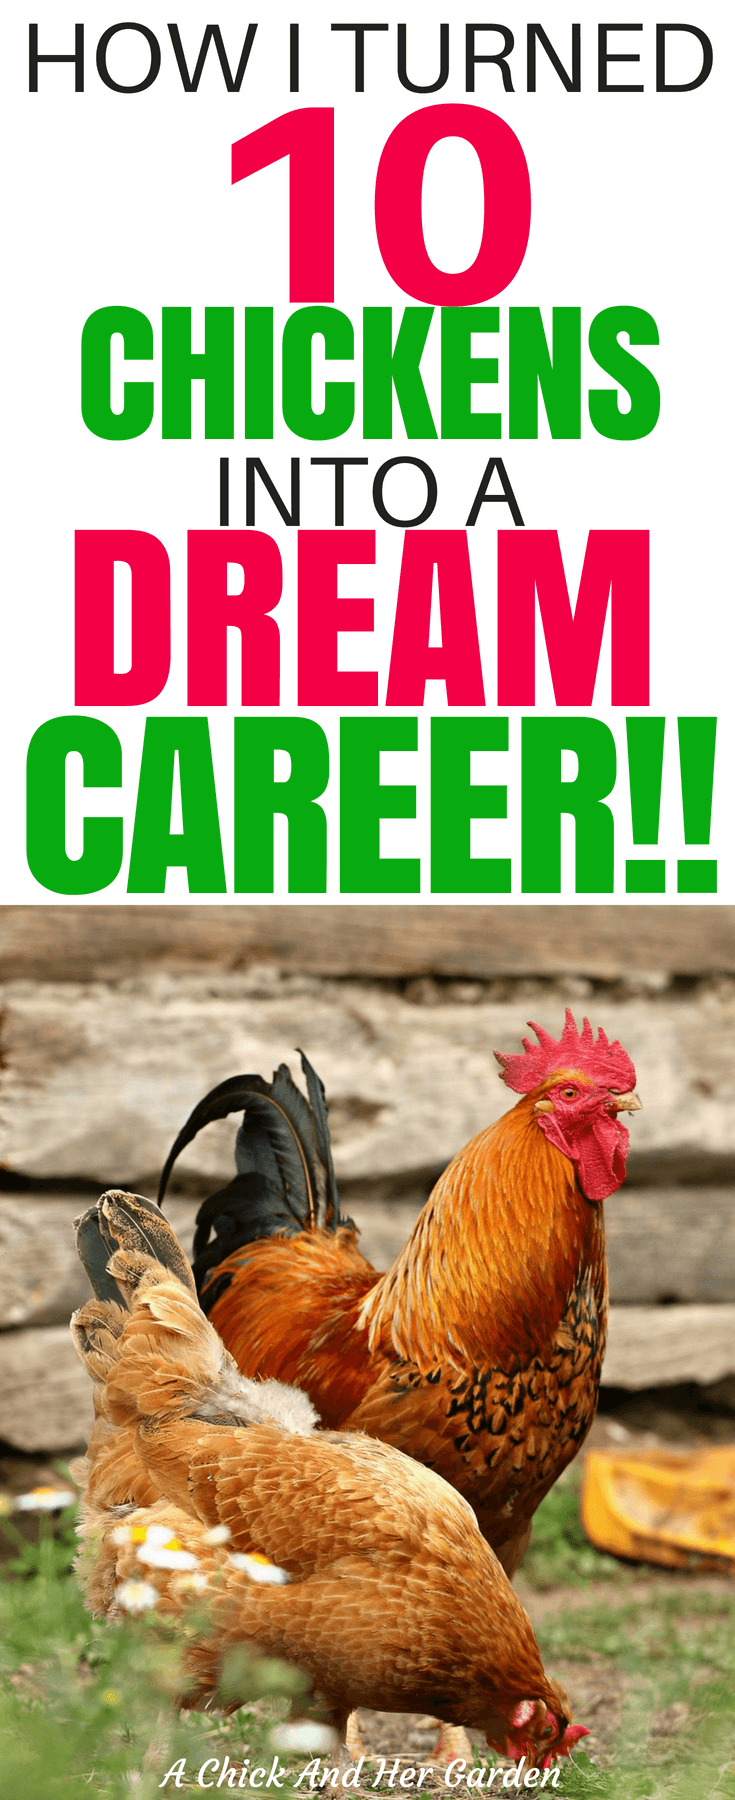 It IS true that you can turn your passion into a career! She turned 10 chickens into the job of her dreams! #homesteadliving #makemoneyonline #makemoneyfromhome #workfromhome #achickandhergarden